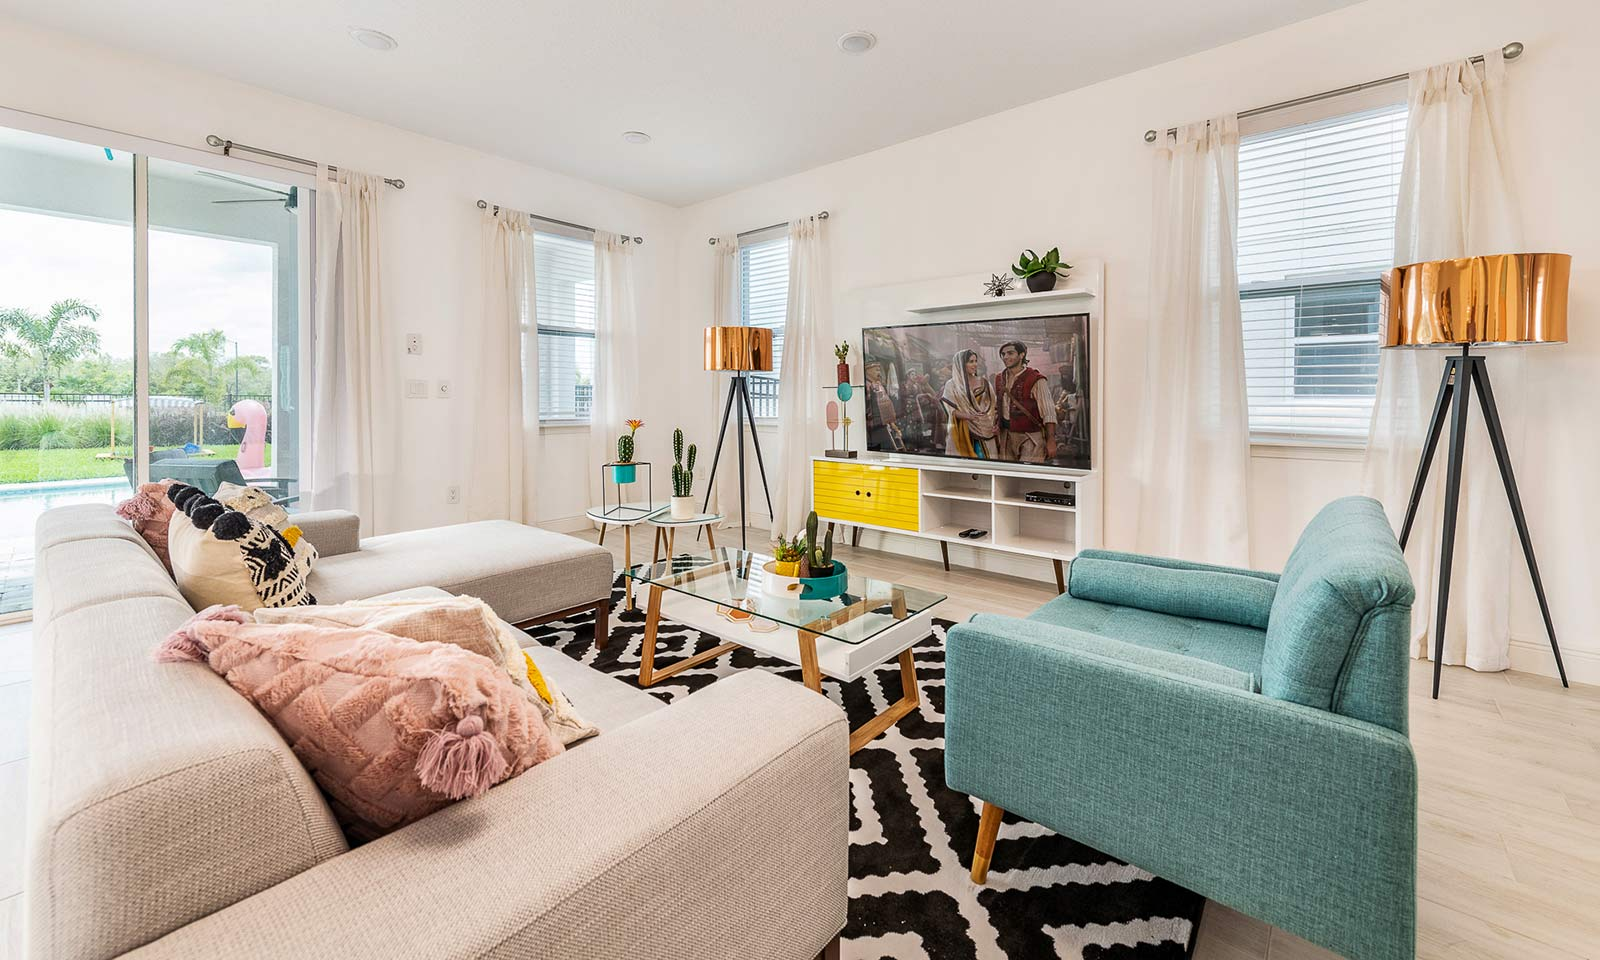 The Chic, Stylish Haven-187743